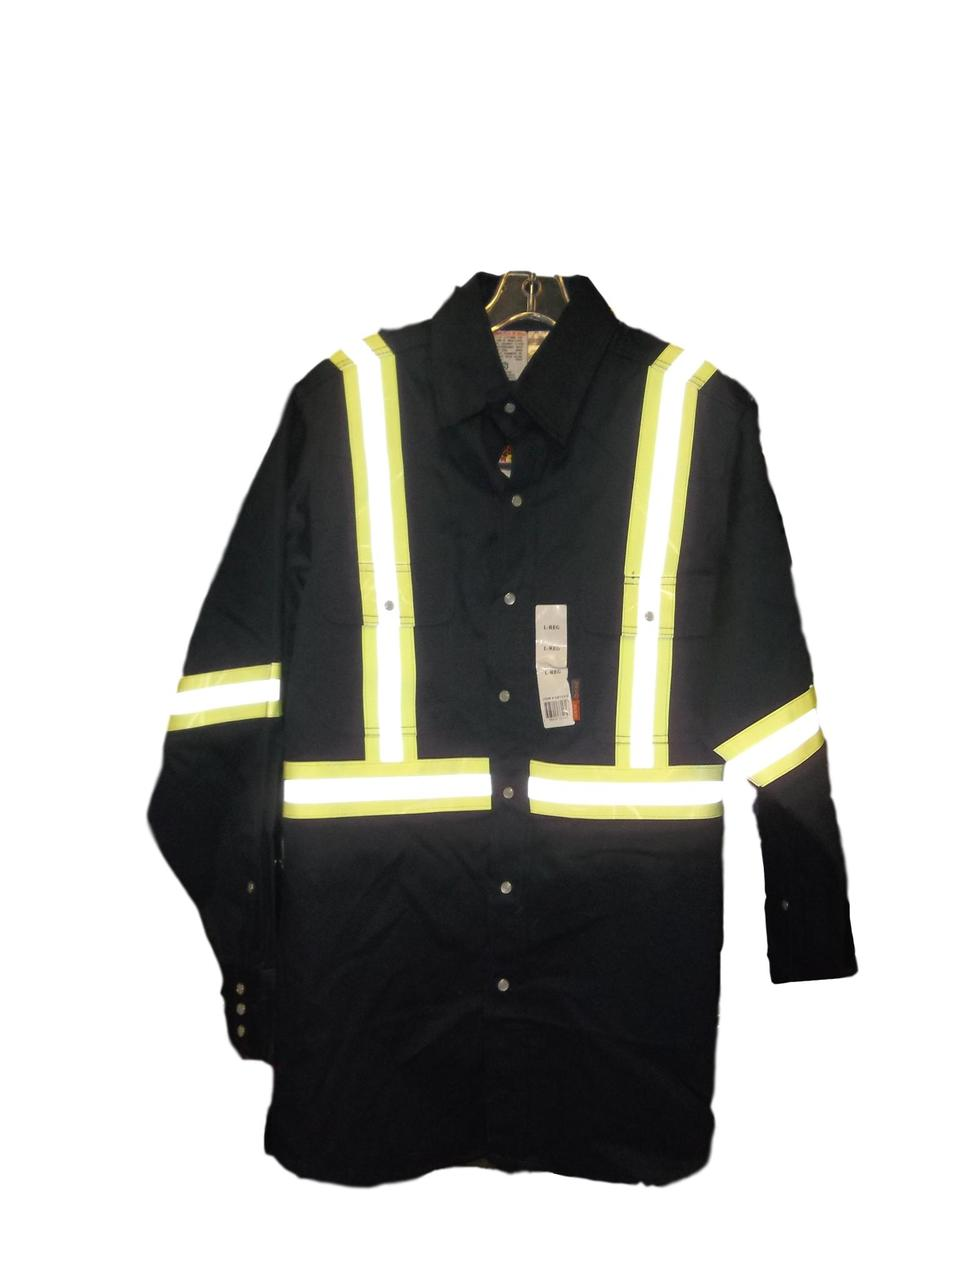 Flame Resistant Navy Light Weight Work Shirt W/Reflective Striping